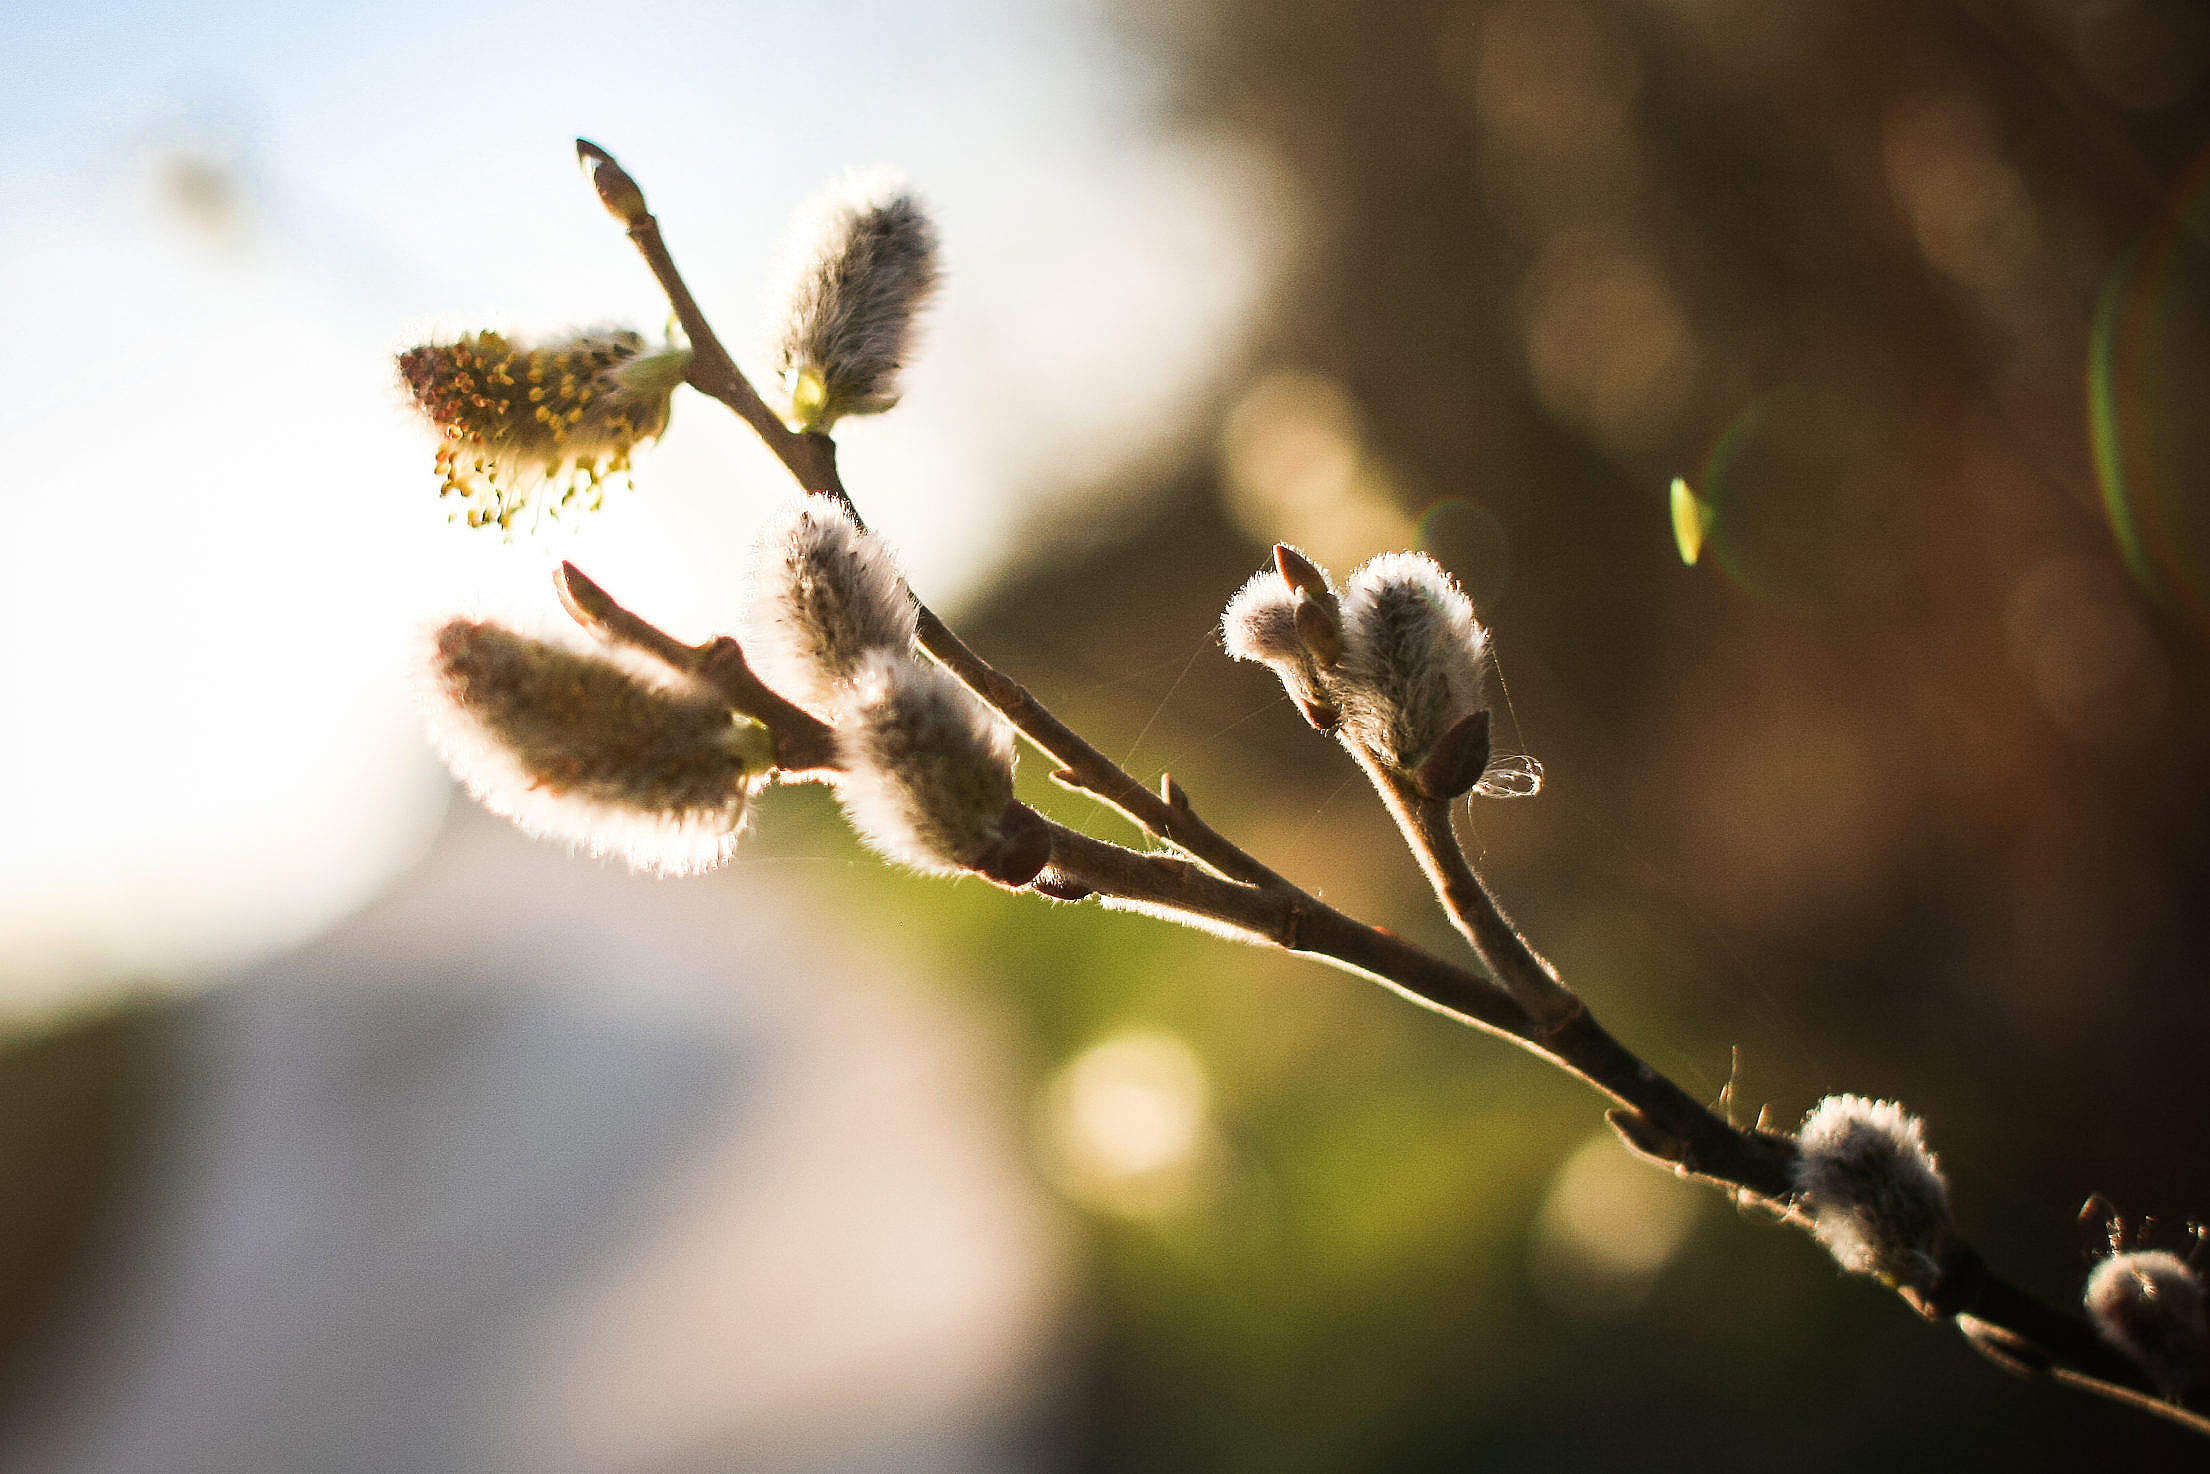 Spring is here! Salix caprea (goat willow) Free Stock Photo